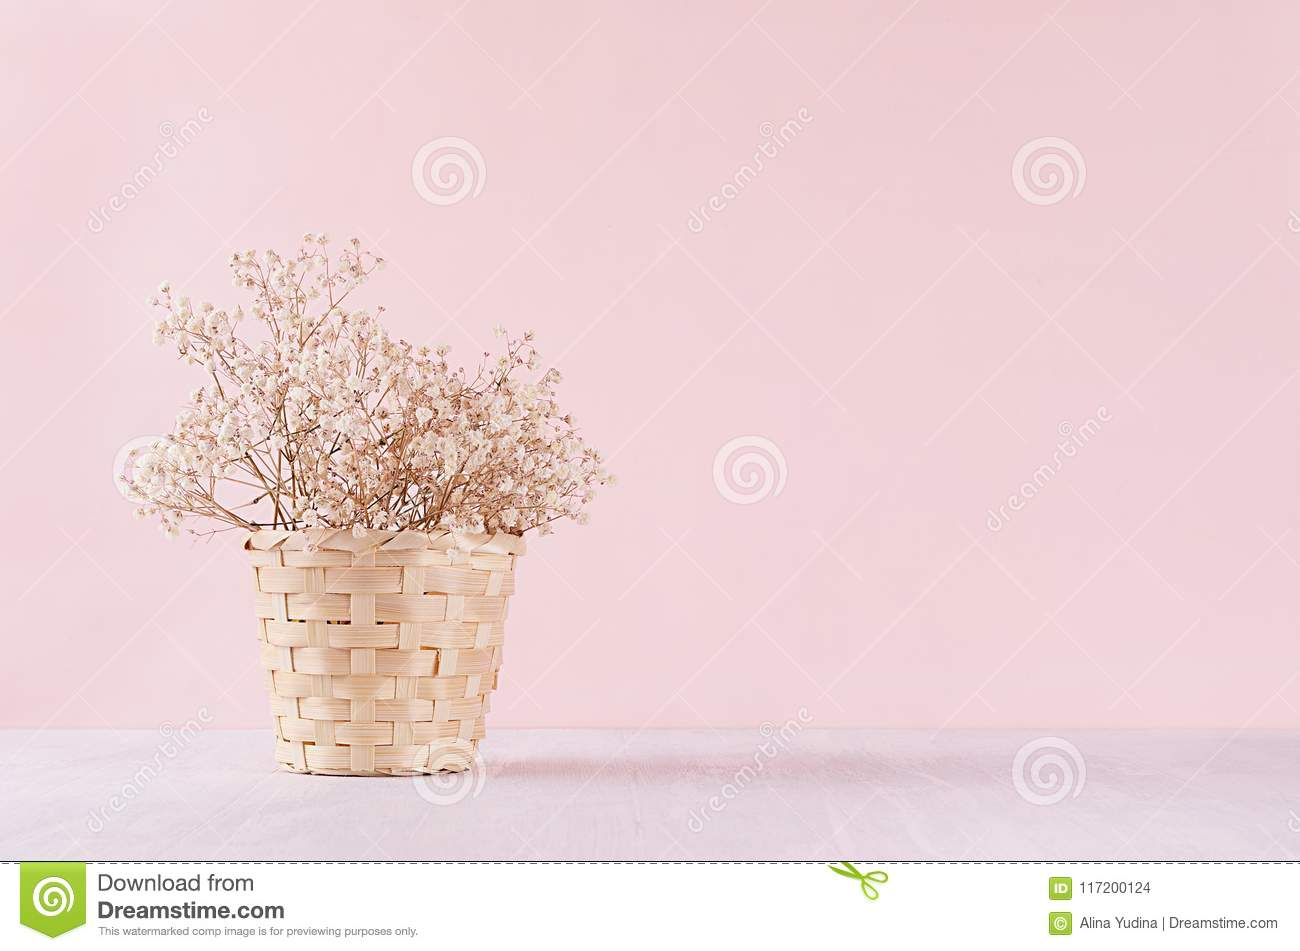 Small white dried flowers in beige wicker basket on soft pink pastel background. Fresh light gentle background.